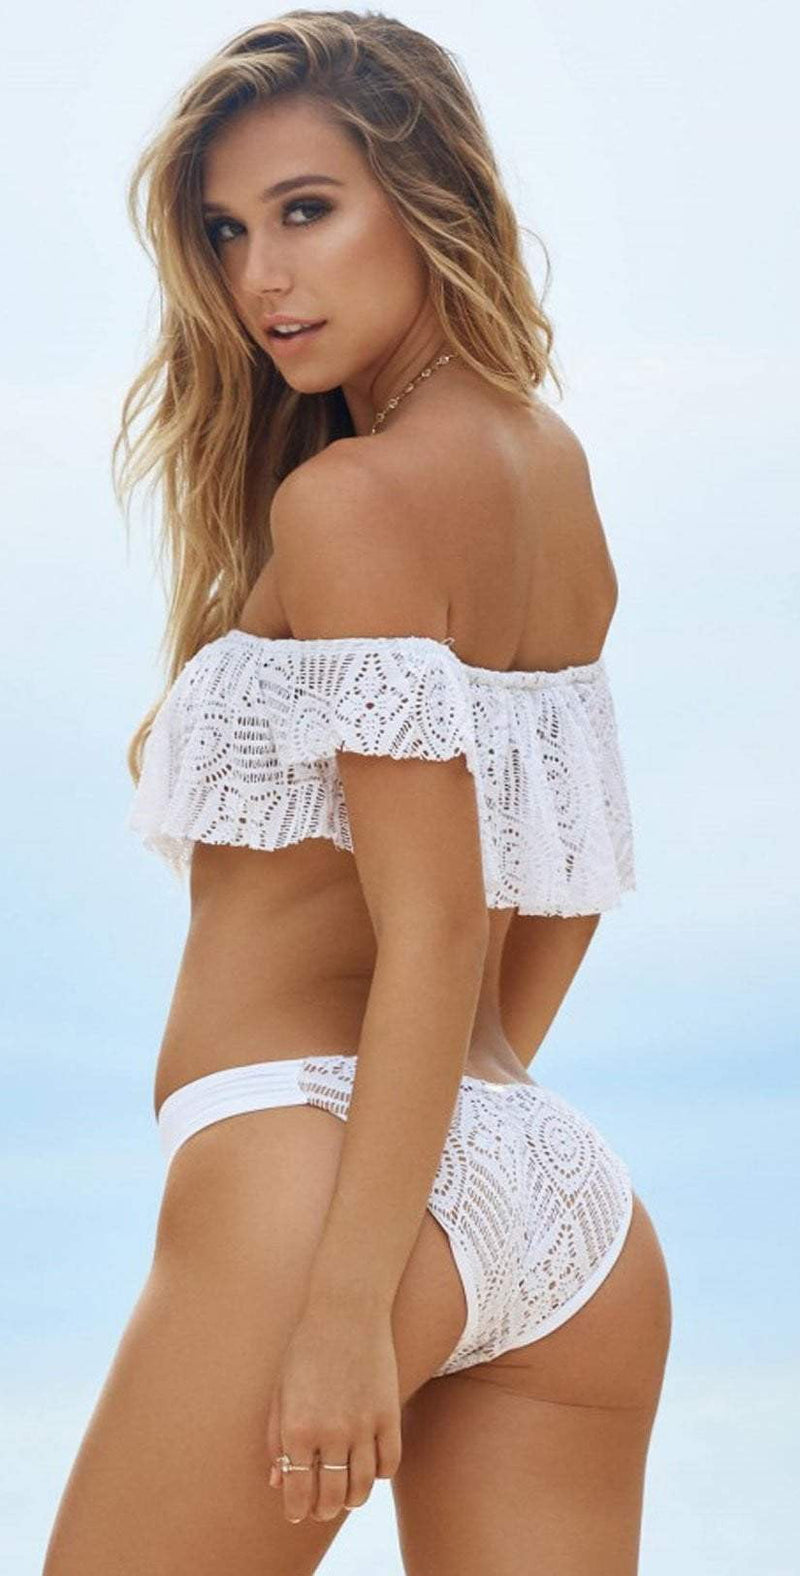 Beach Bunny Love Me Like You Do Sweetheart Bottoms in White B17113B5-WHTE: